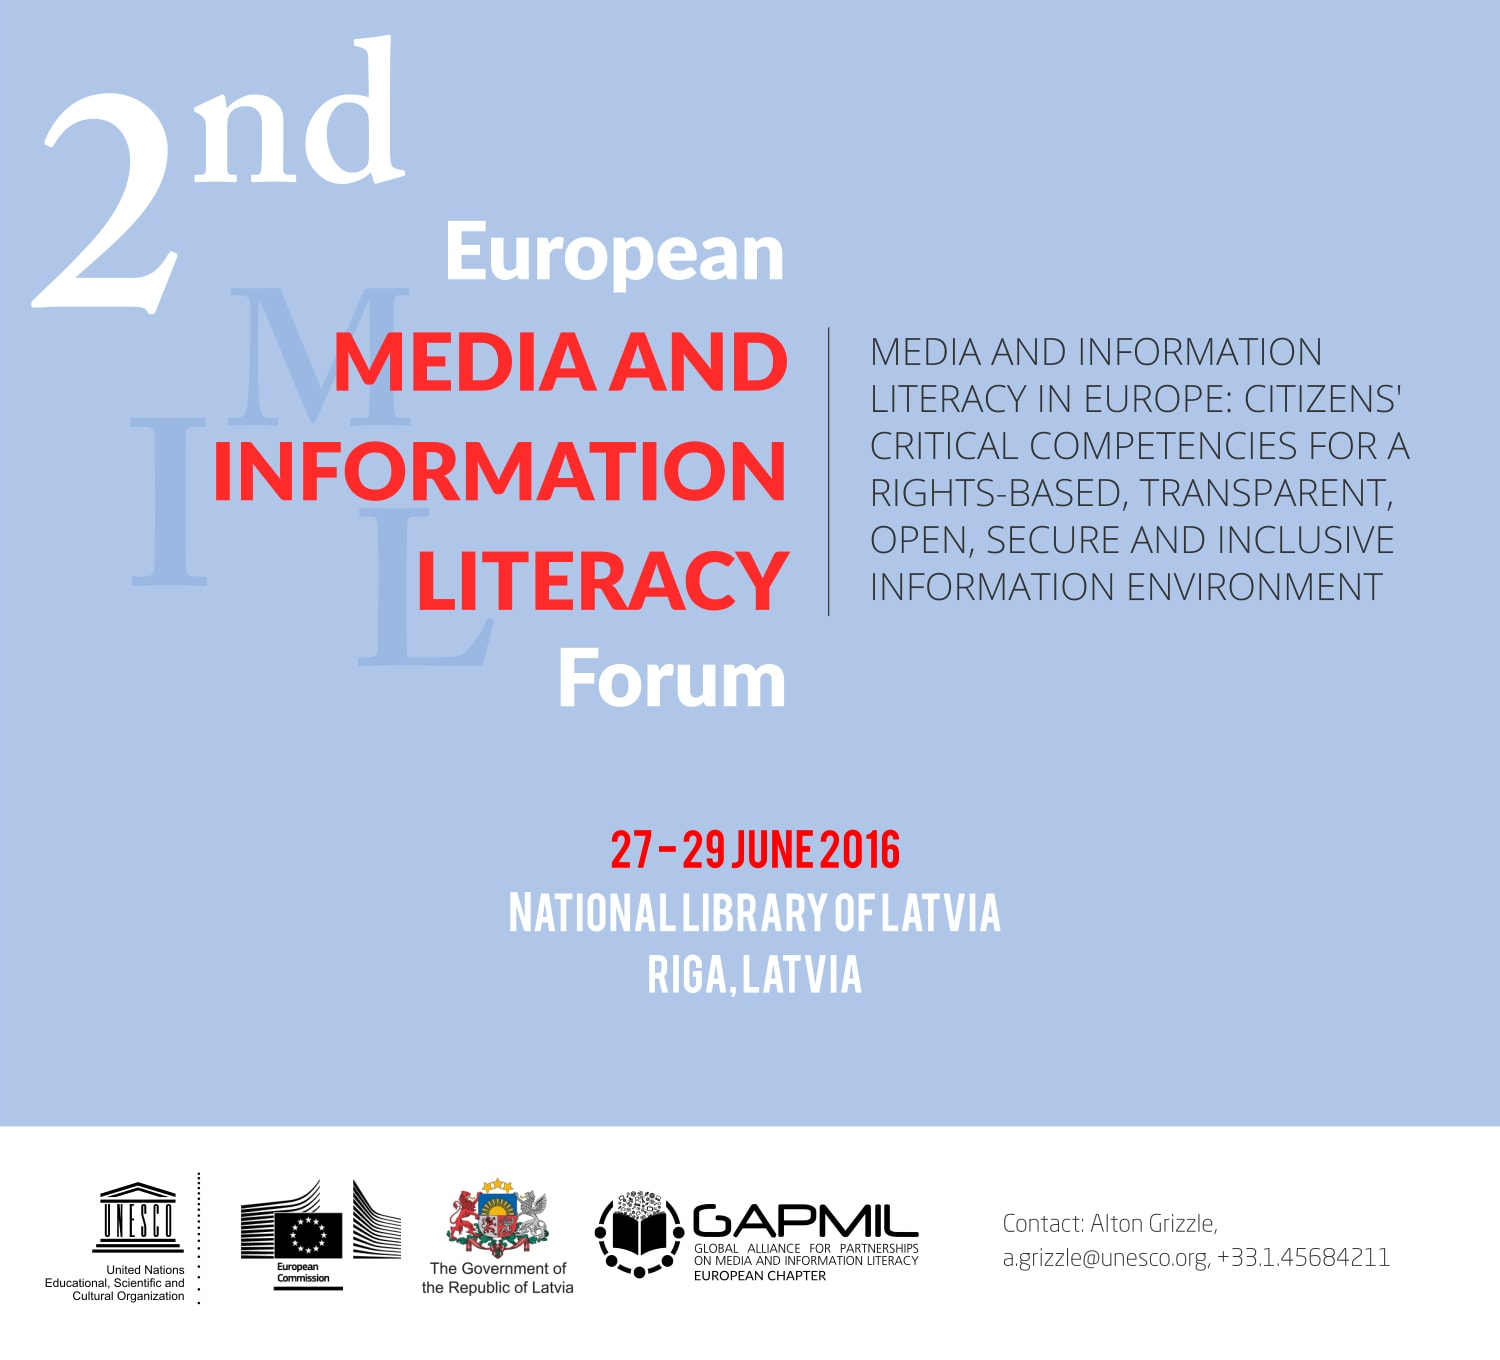 Second European Media and Information Literacy Forum